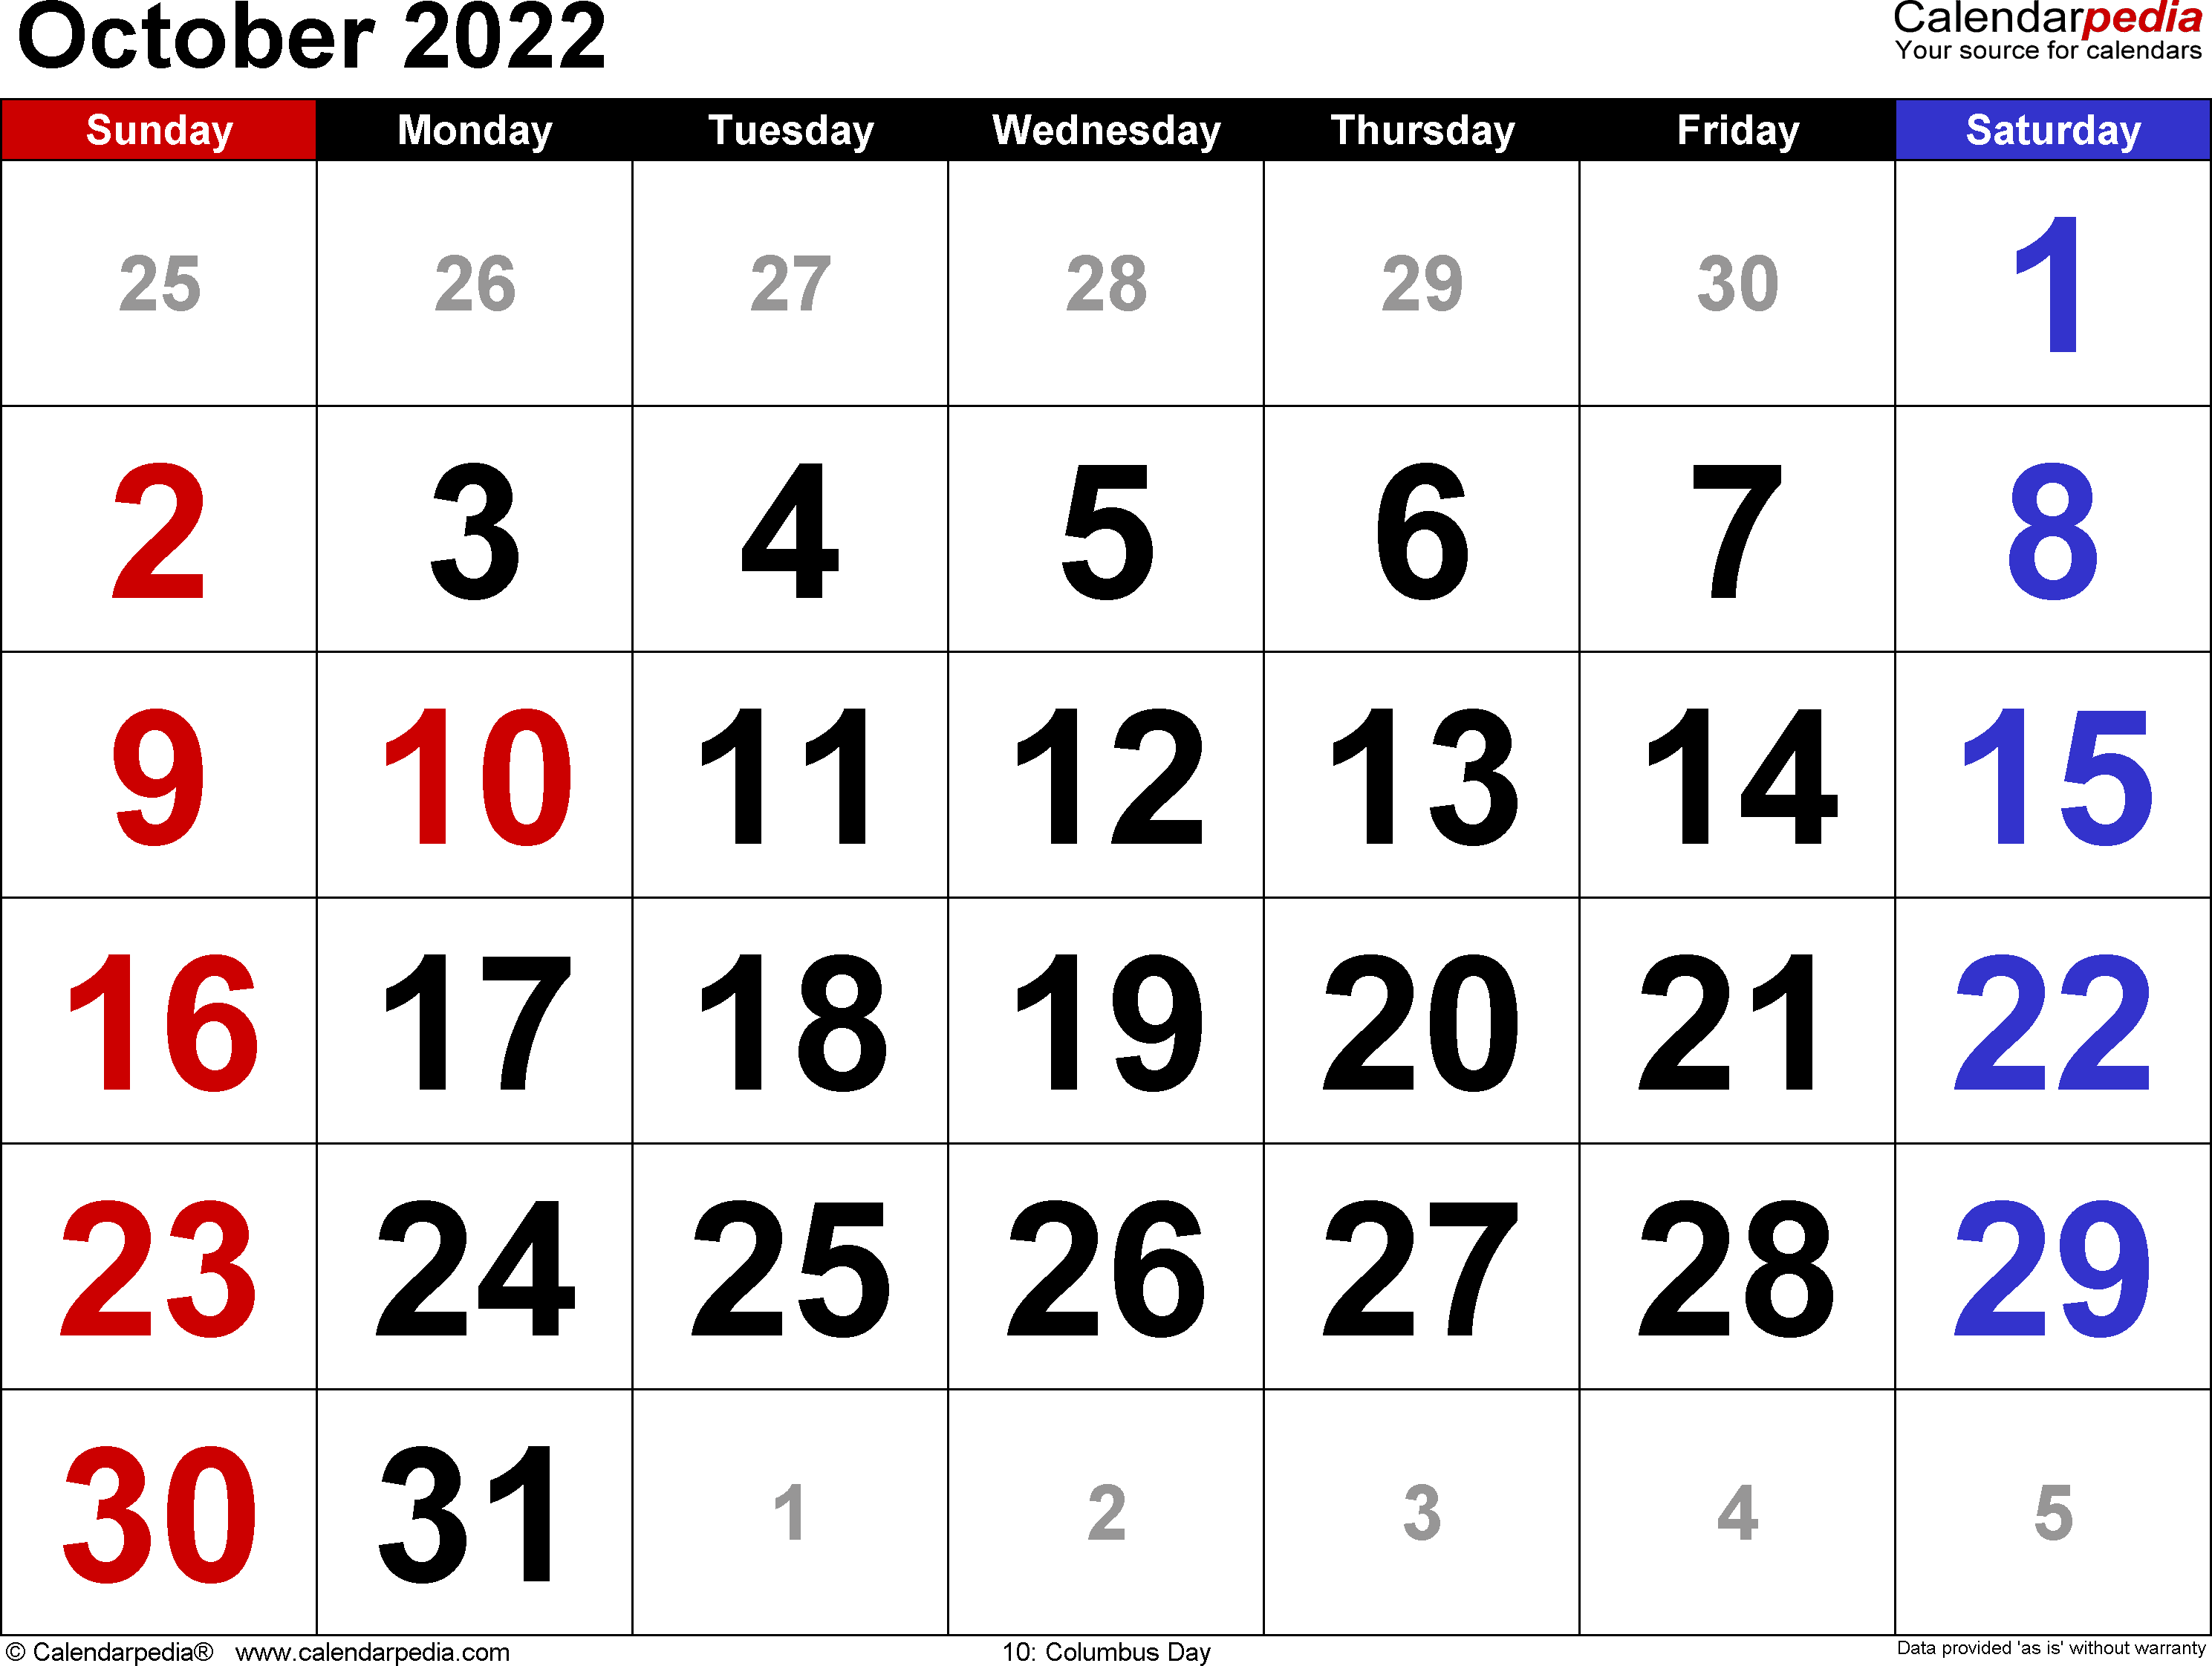 October 2022 Calendars for Word, Excel and PDF